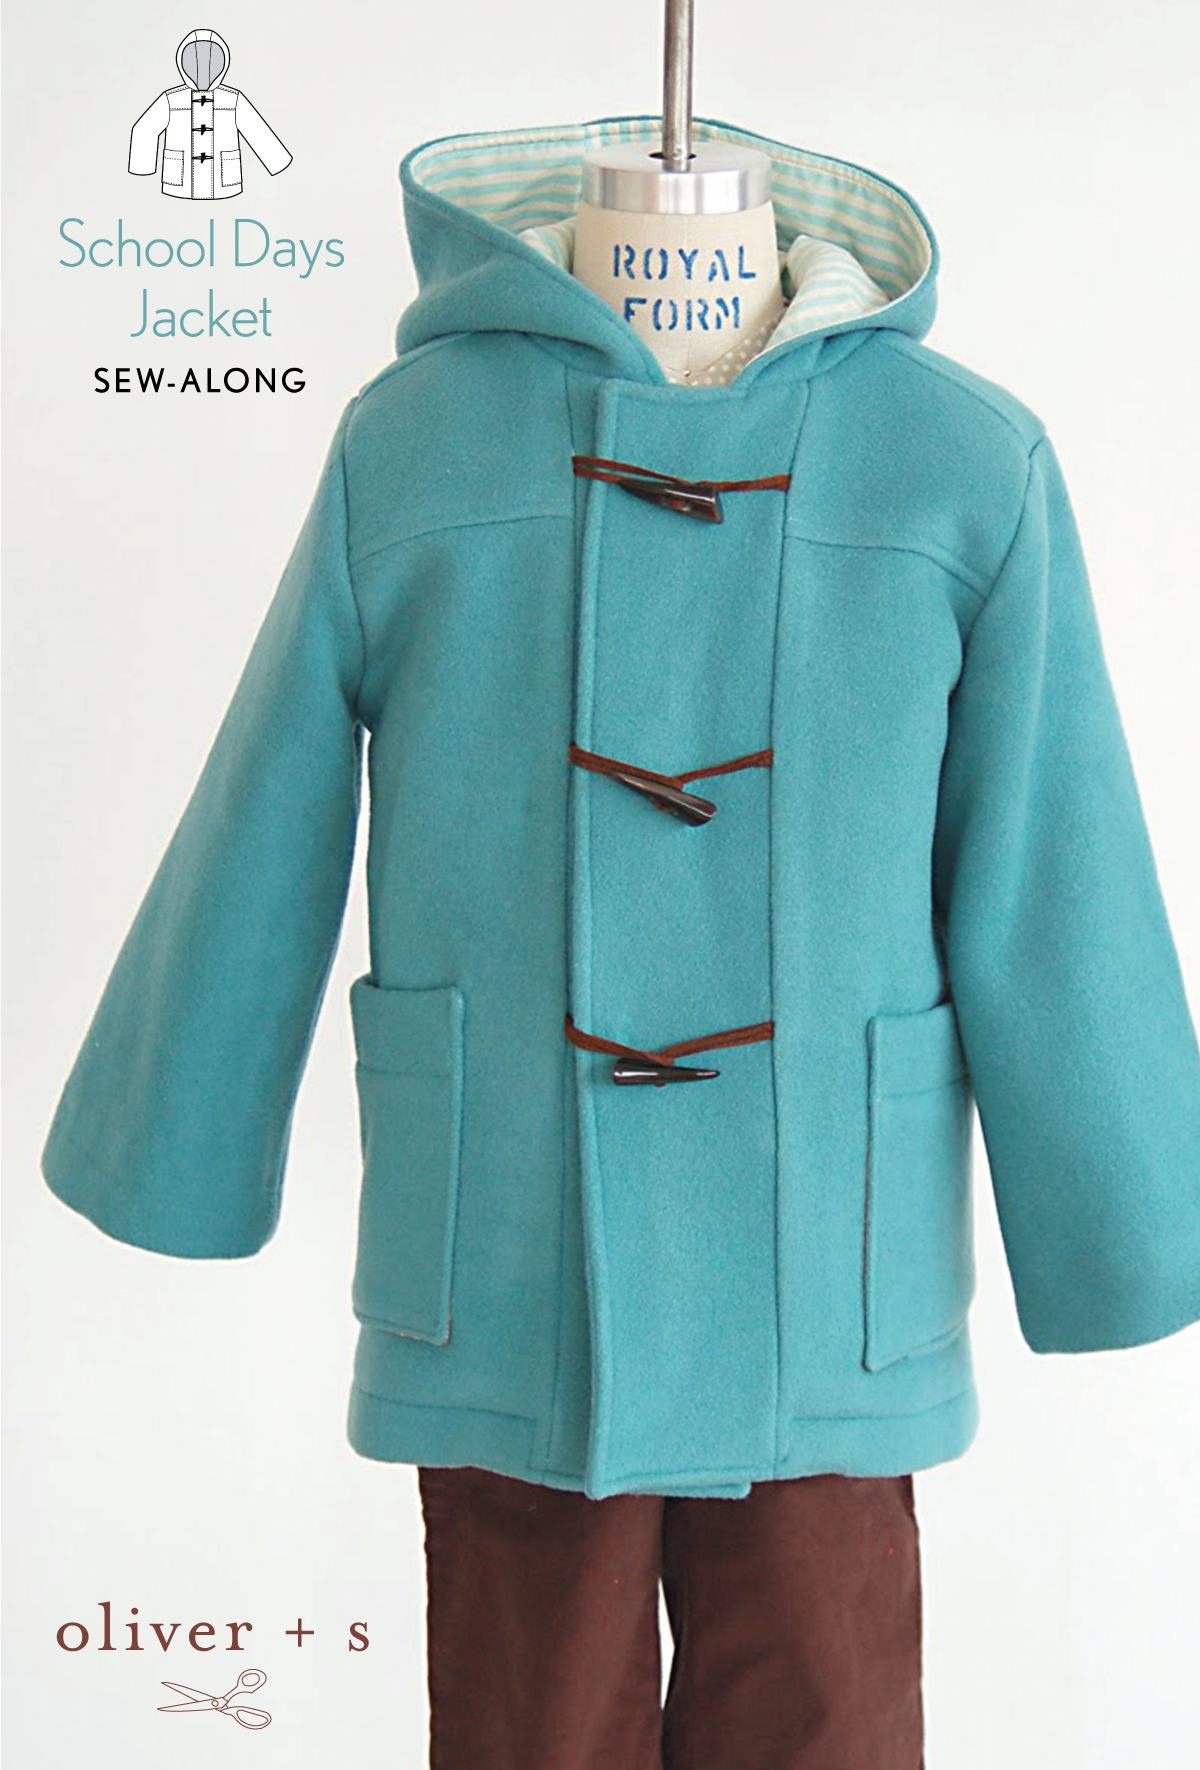 School days jacket sew along blog oliver s the oliver s school days jacket sew along jeuxipadfo Gallery